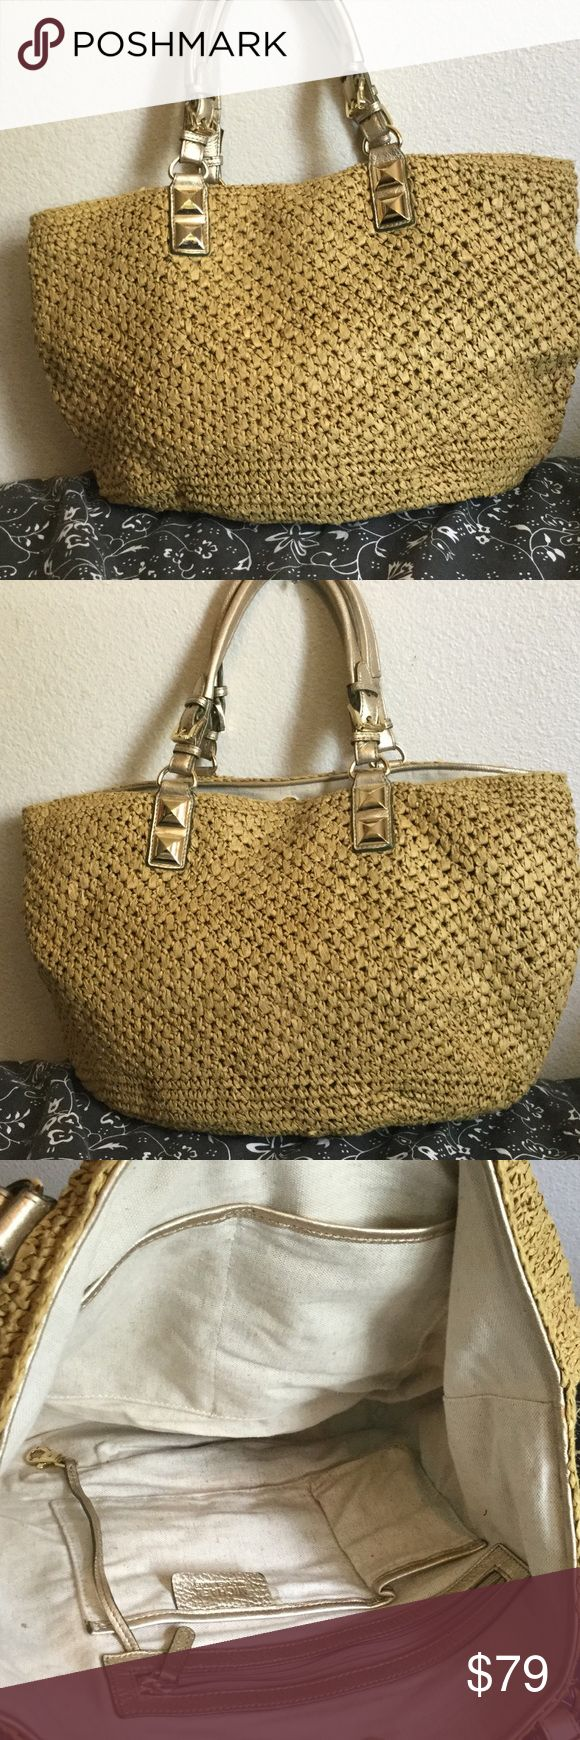 """Michael Kors MK SANTORINI straw tote MICHAEL KORS """"MK"""" SANTORINI Woven Straw Large """"Beach Bag"""" or Shopper Market Tote Bag.  Gold leather trim with gold tone hardware, large single interior compartment with signature canvas """"MK"""" fabric lining and slip and zipper pocket. This bag is in """"Good Condition"""" with some signs of wear. Size Large 20"""" widest  7.75 depth 12"""" tall KORS Michael Kors Bags Shoulder Bags"""